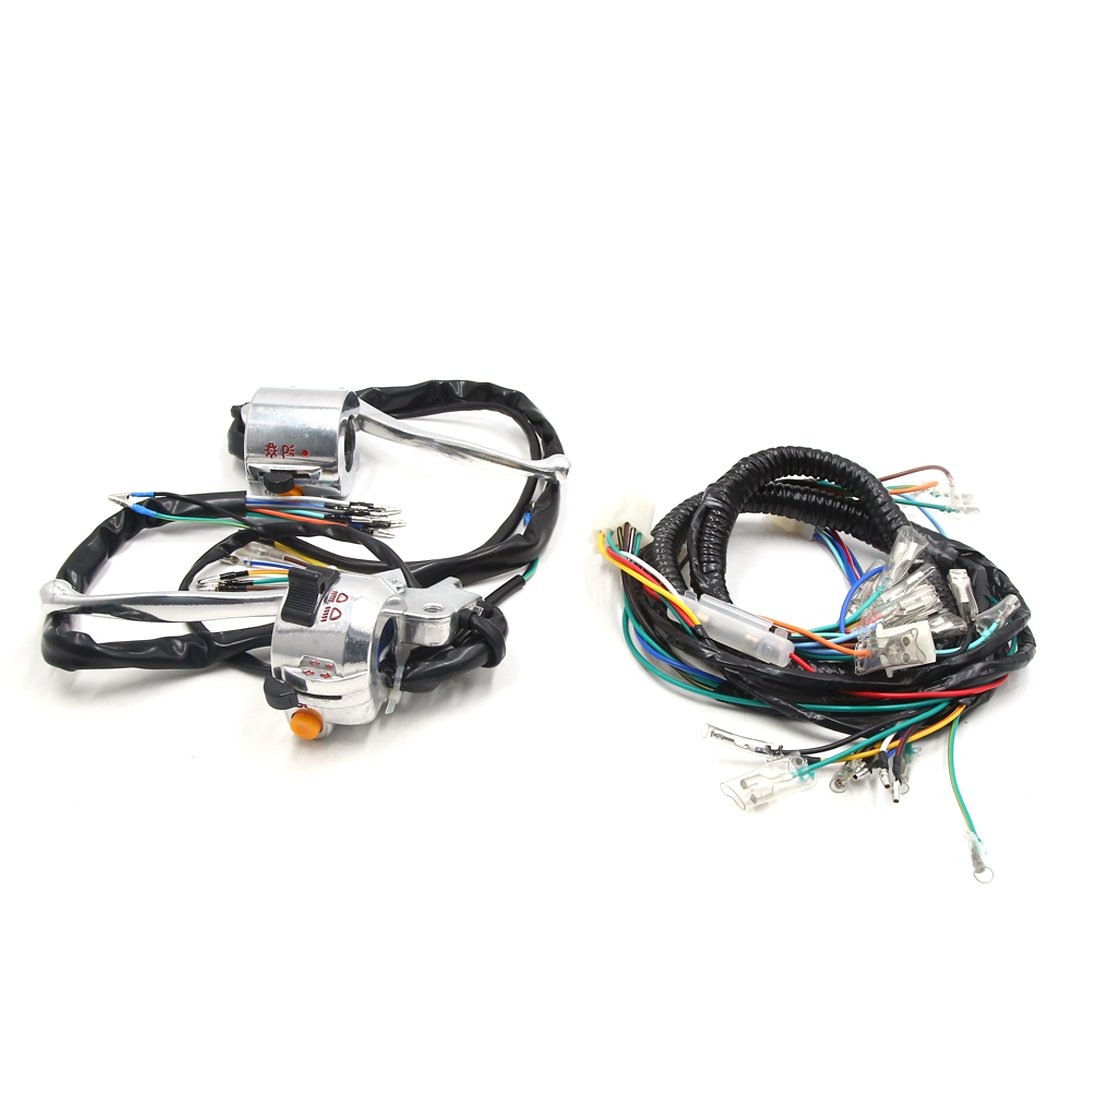 uxcell Motorcycle Handlebar Turn Signal Light Control Switch Set for Honda JH70 w Wire Harness